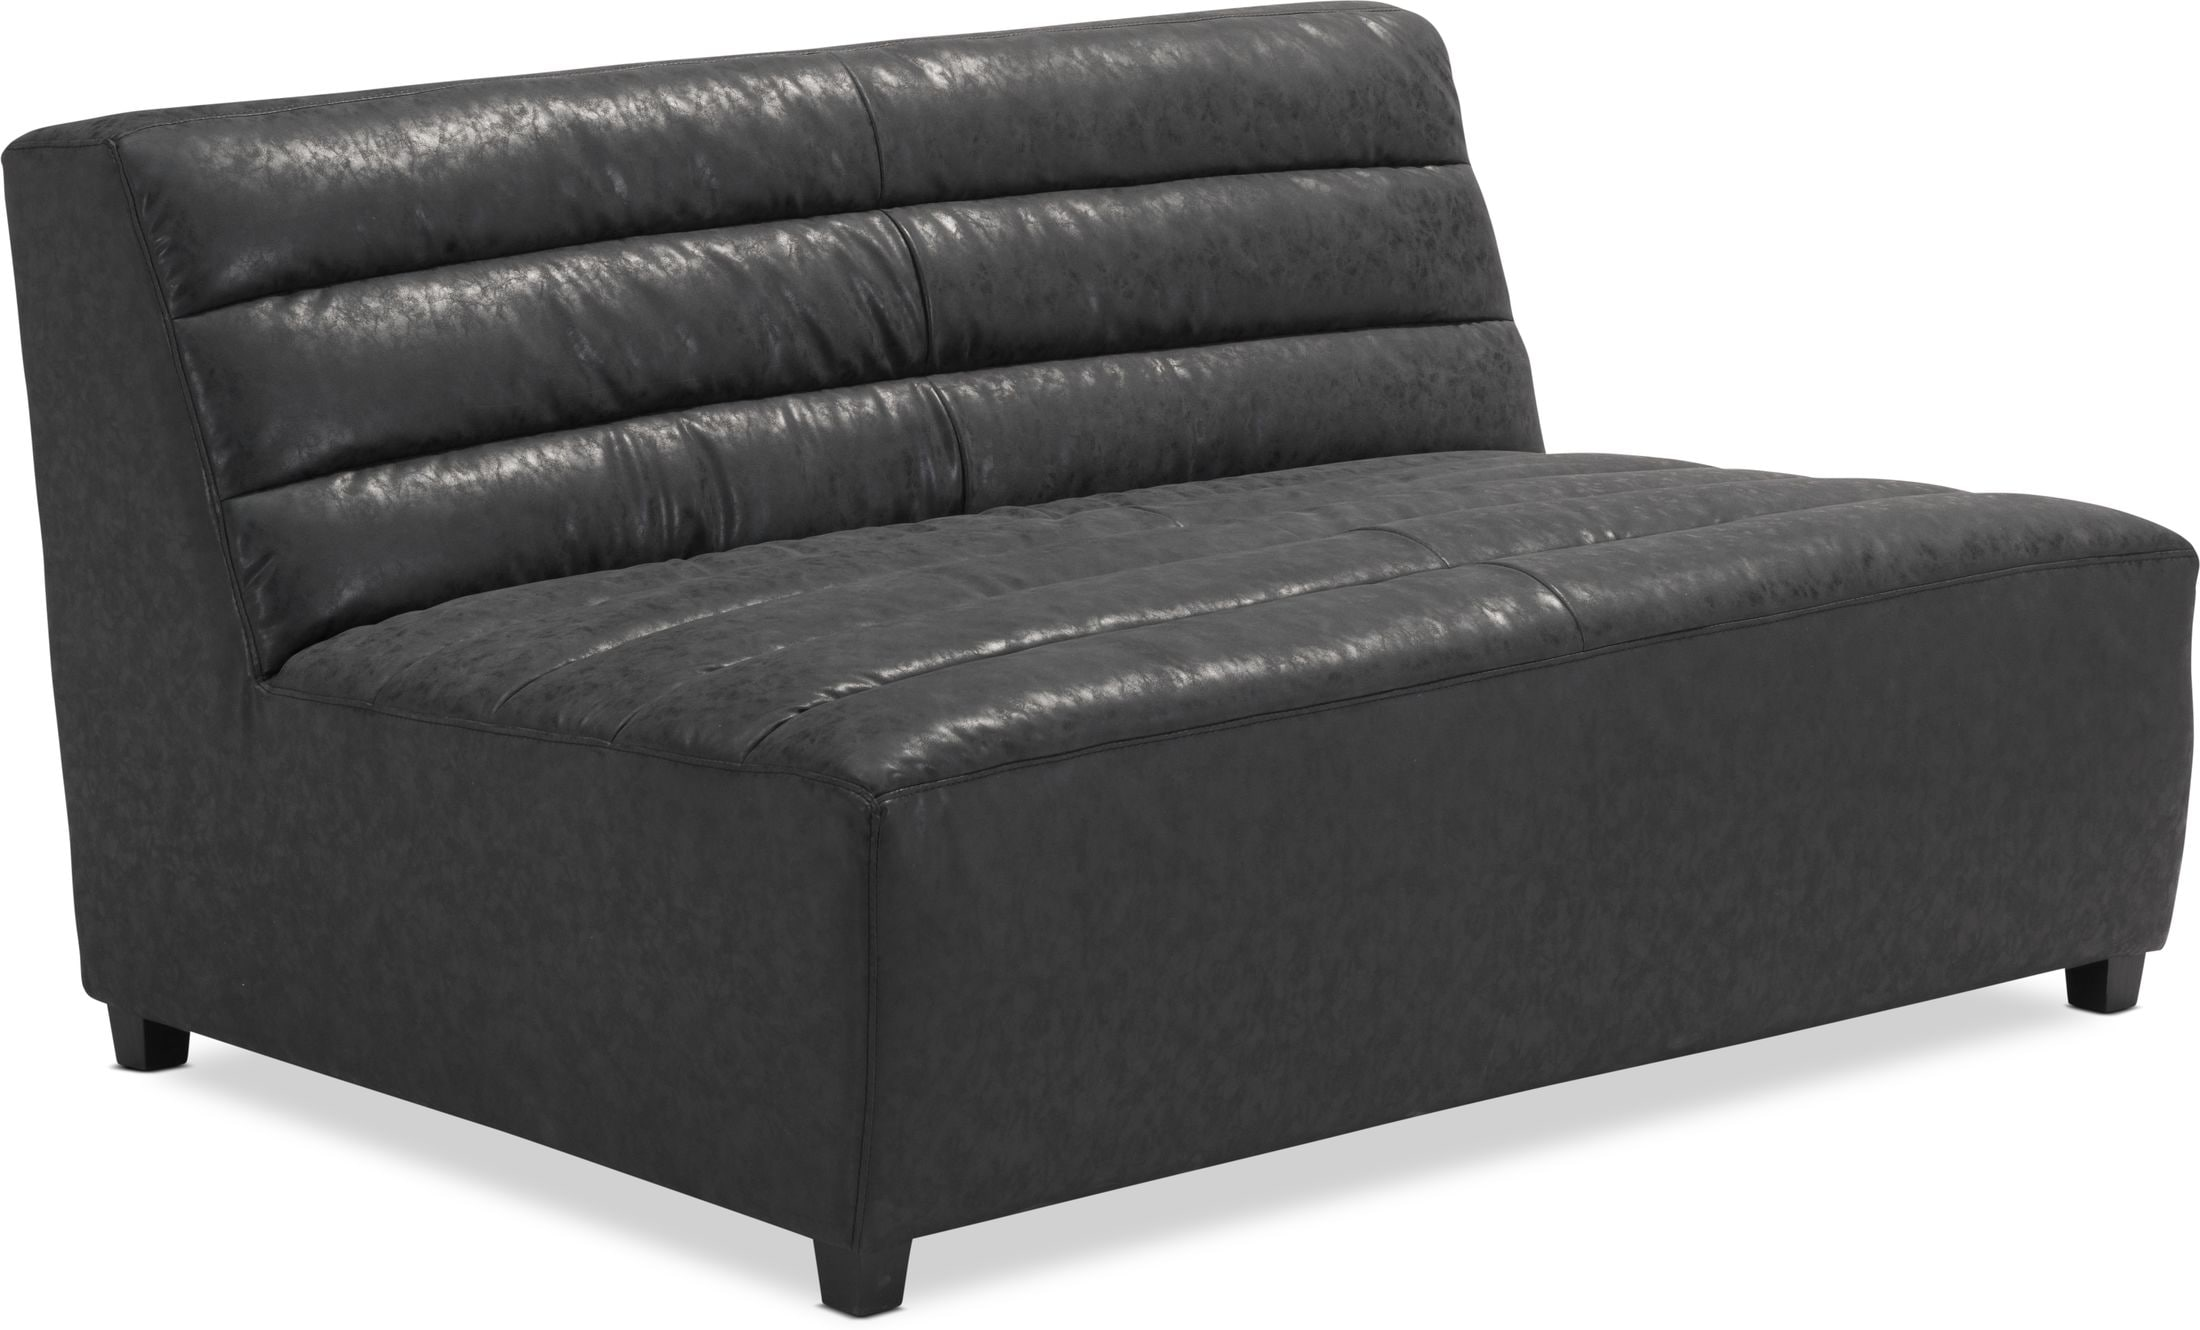 Living Room Furniture - Phoenix Loveseat